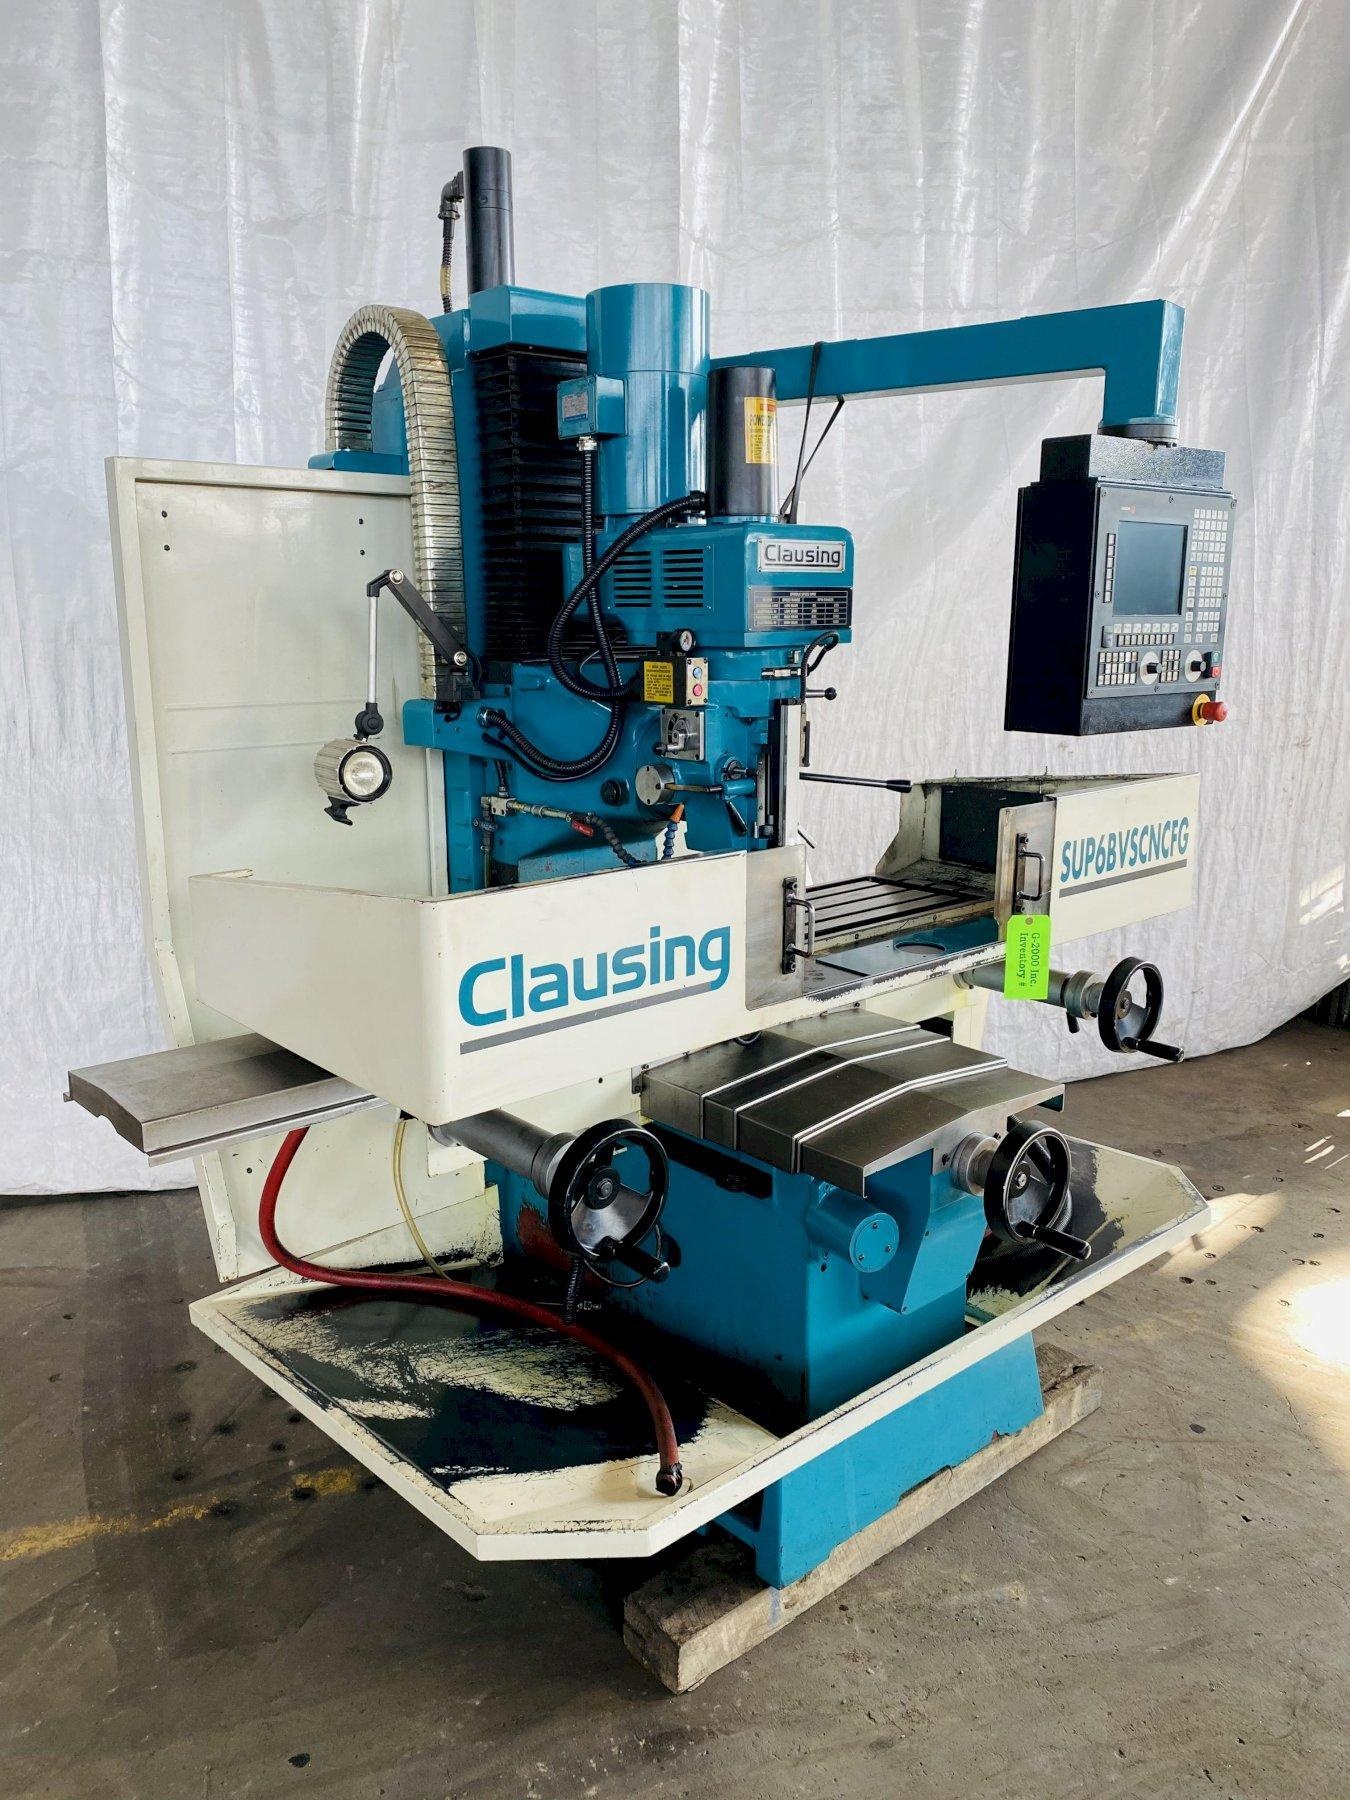 (2014) 5 HP CLAUSING SUP6BVSCNCFG 3 AXIS SUPER BED MILL. STOCK # 0307821